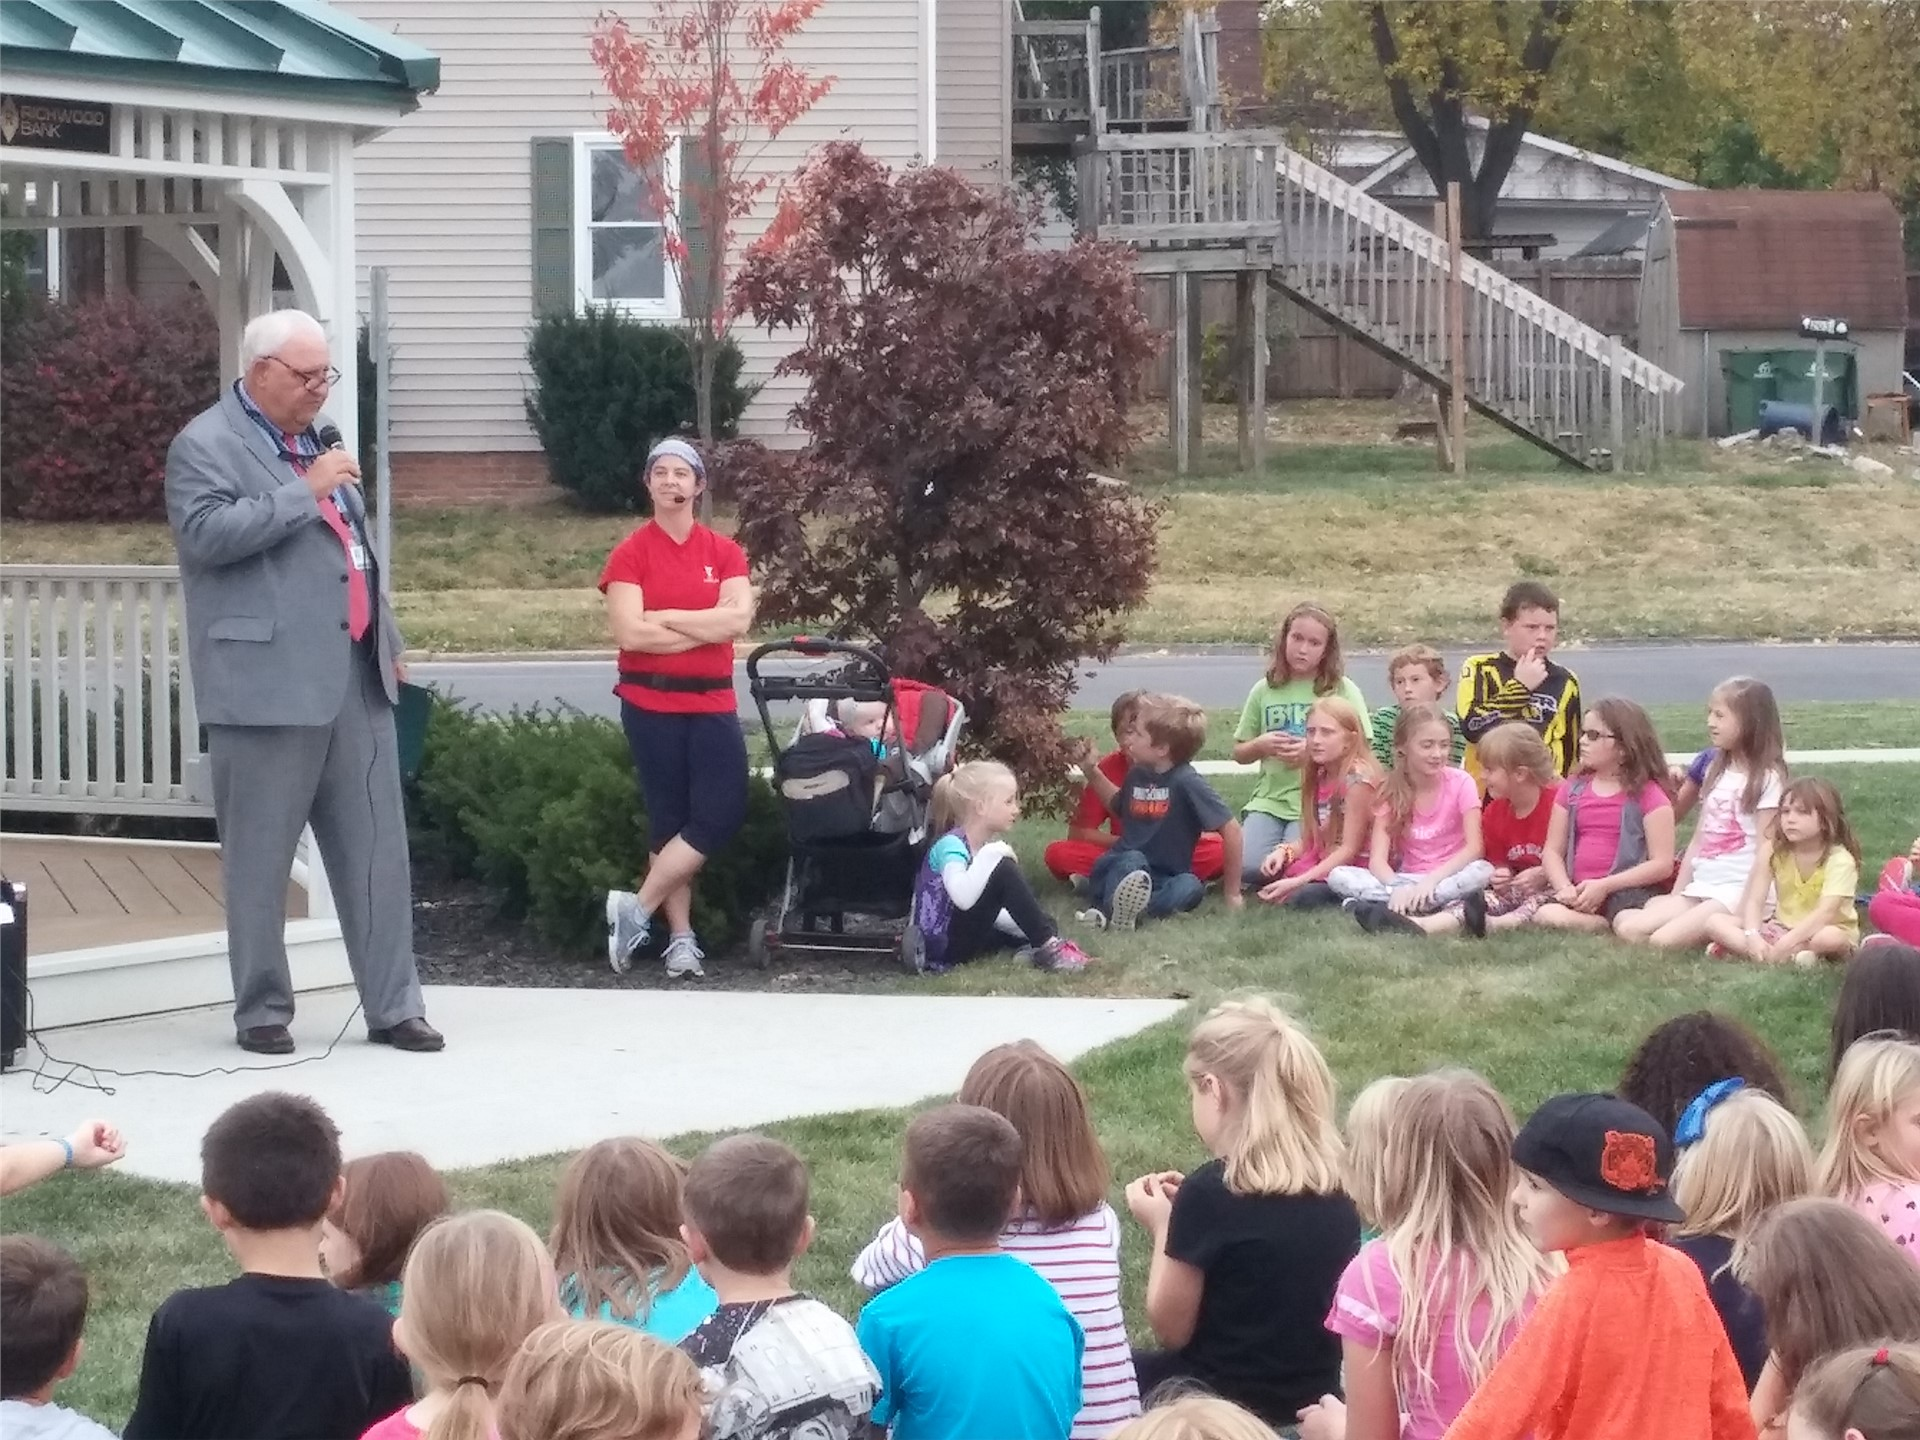 Mayor John Gore proclaiming that October 22nd, 2015 is Lights On After School Day in Marysville